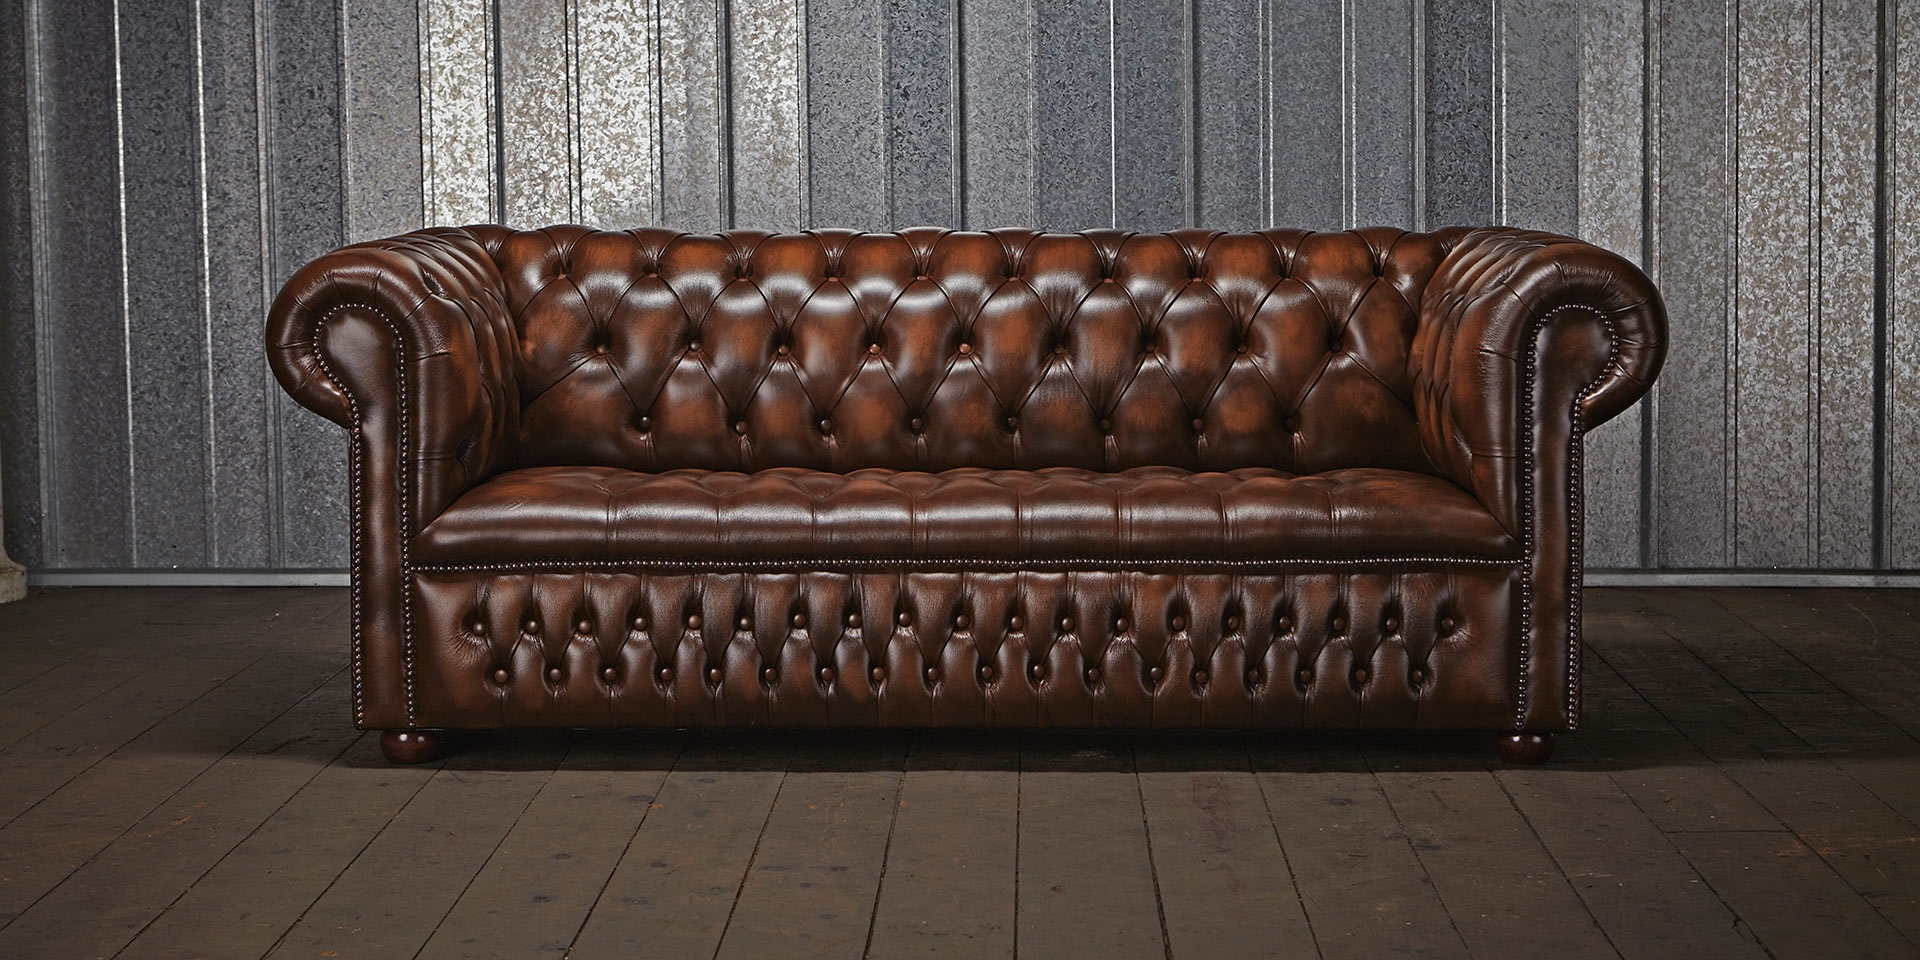 This Image Identifies The Chesterfield Sofa Which Was One The Of Throughout Chesterfield Sofas And Chairs (Image 15 of 15)